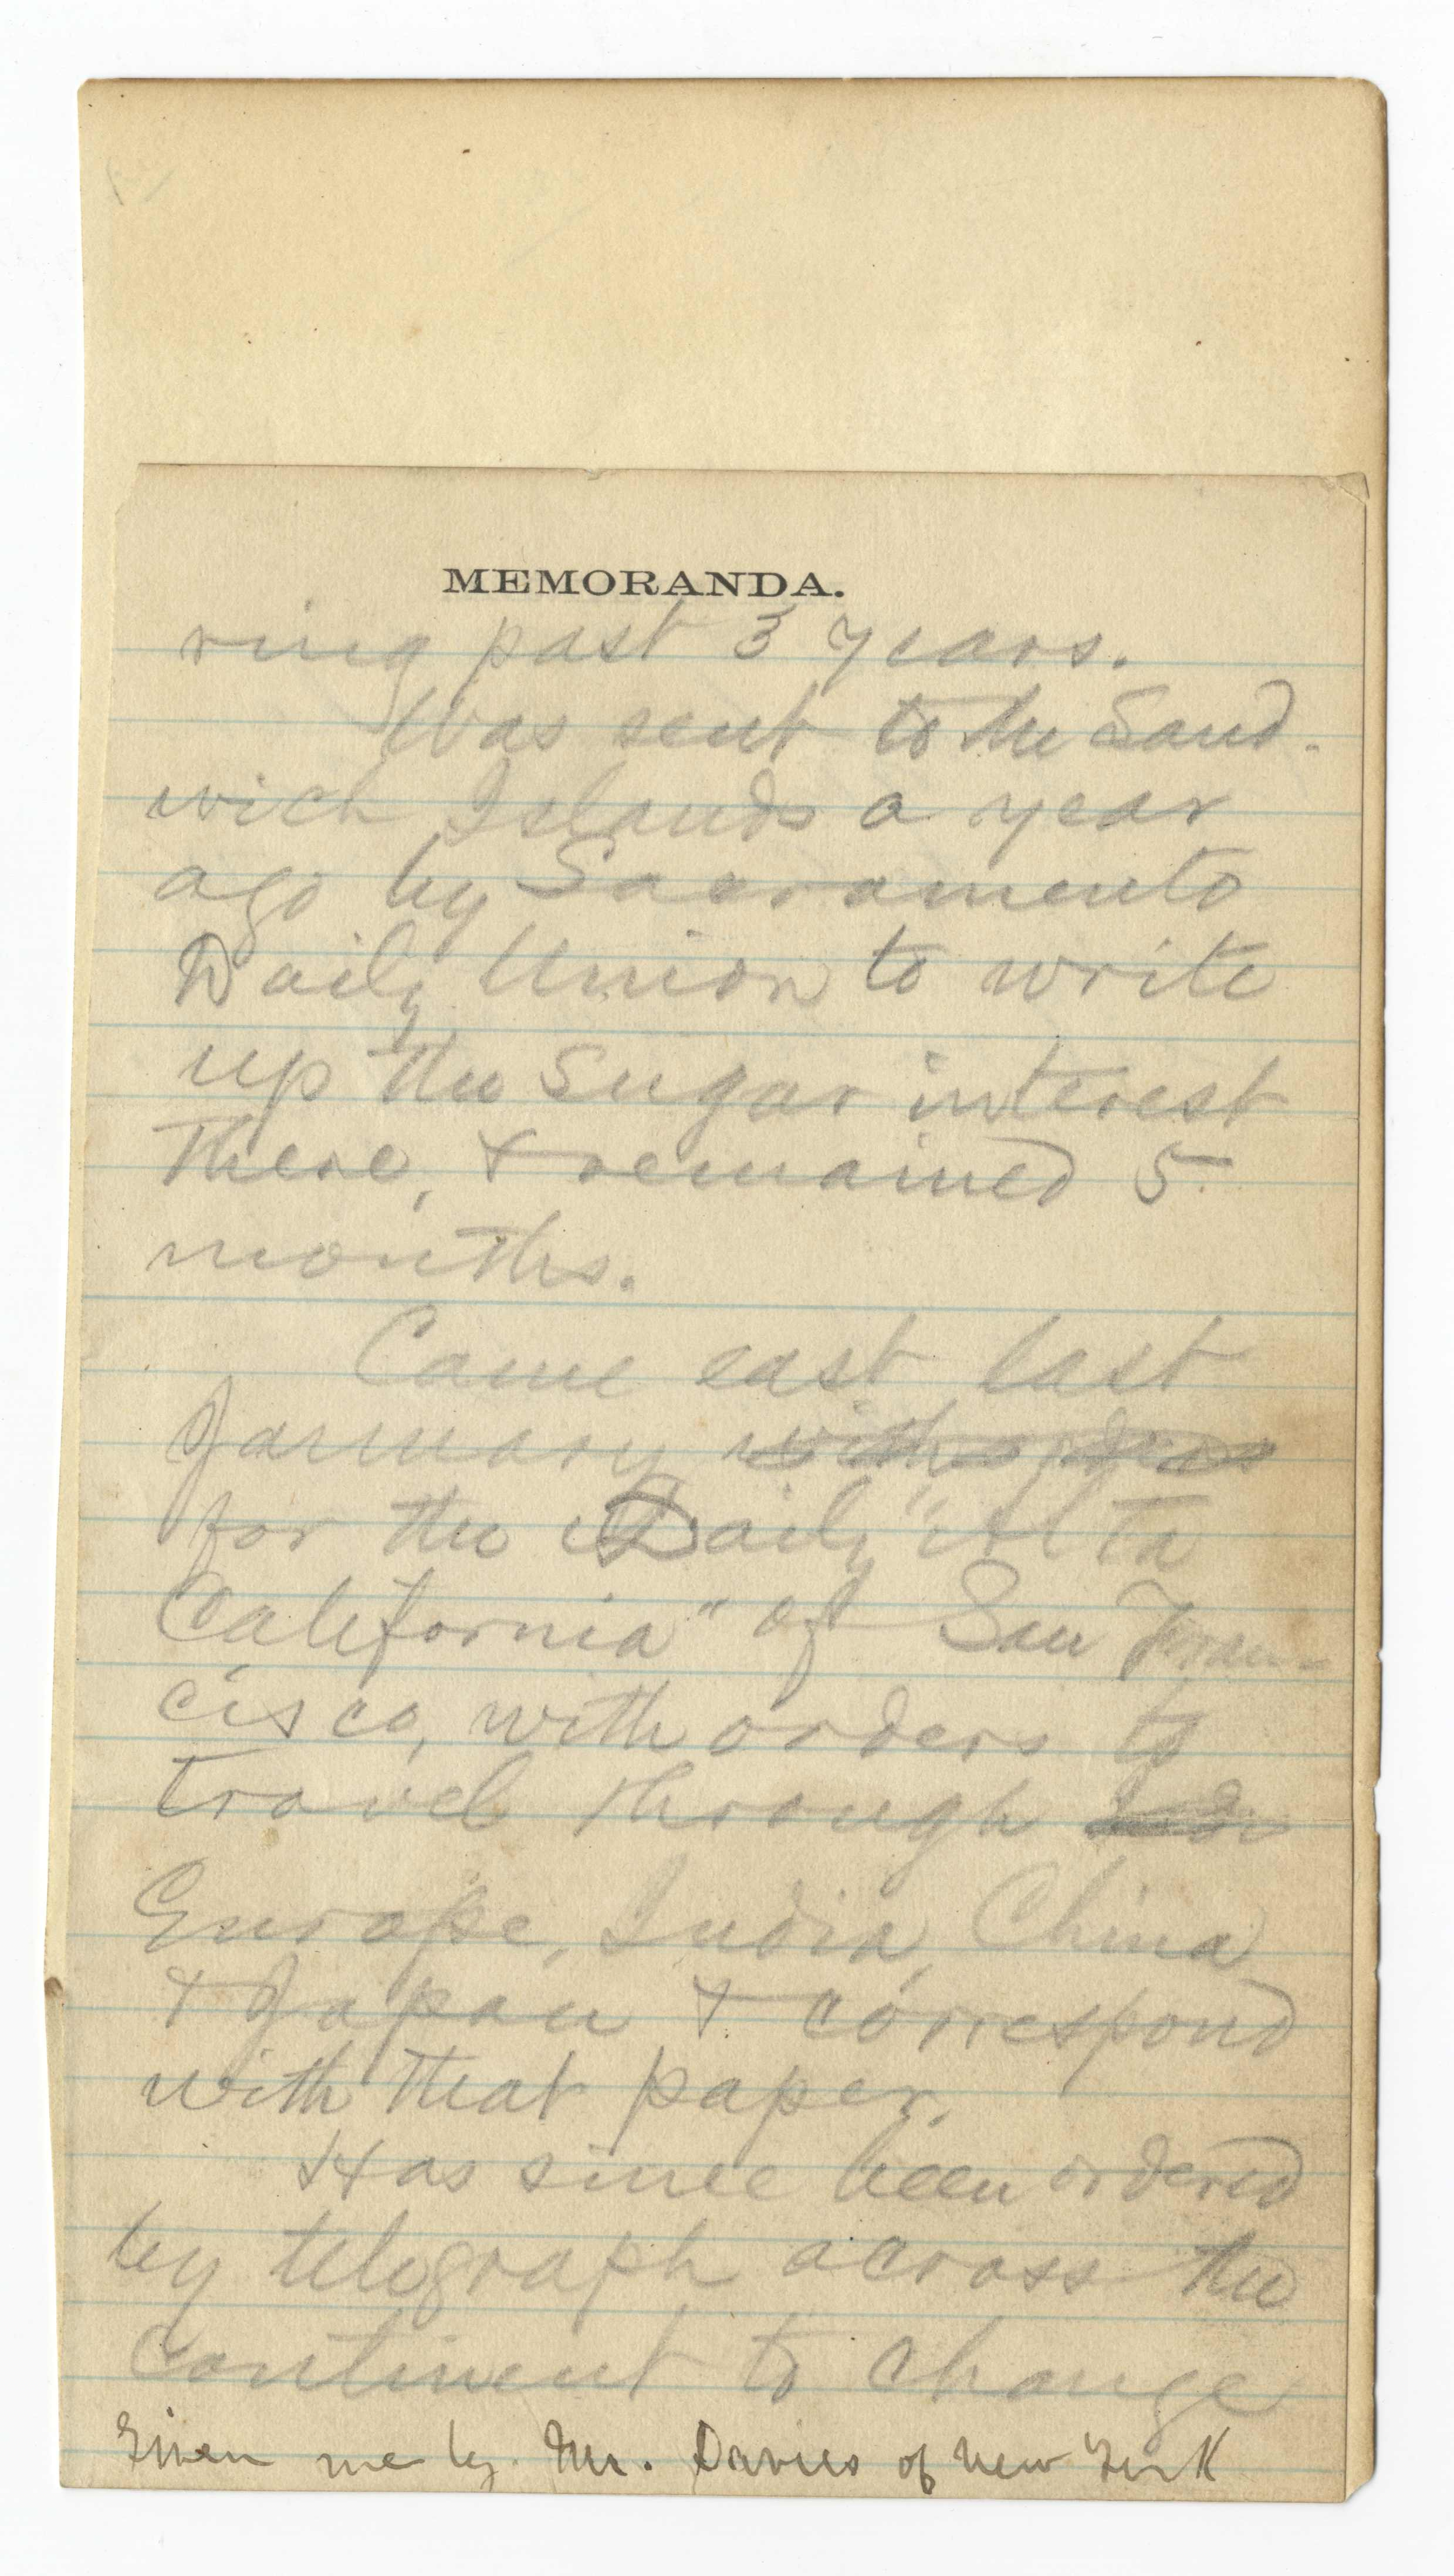 Manuscript from Mark Twain's Missing 1867 Notebook, Announcing His Intention to Travel Abroad